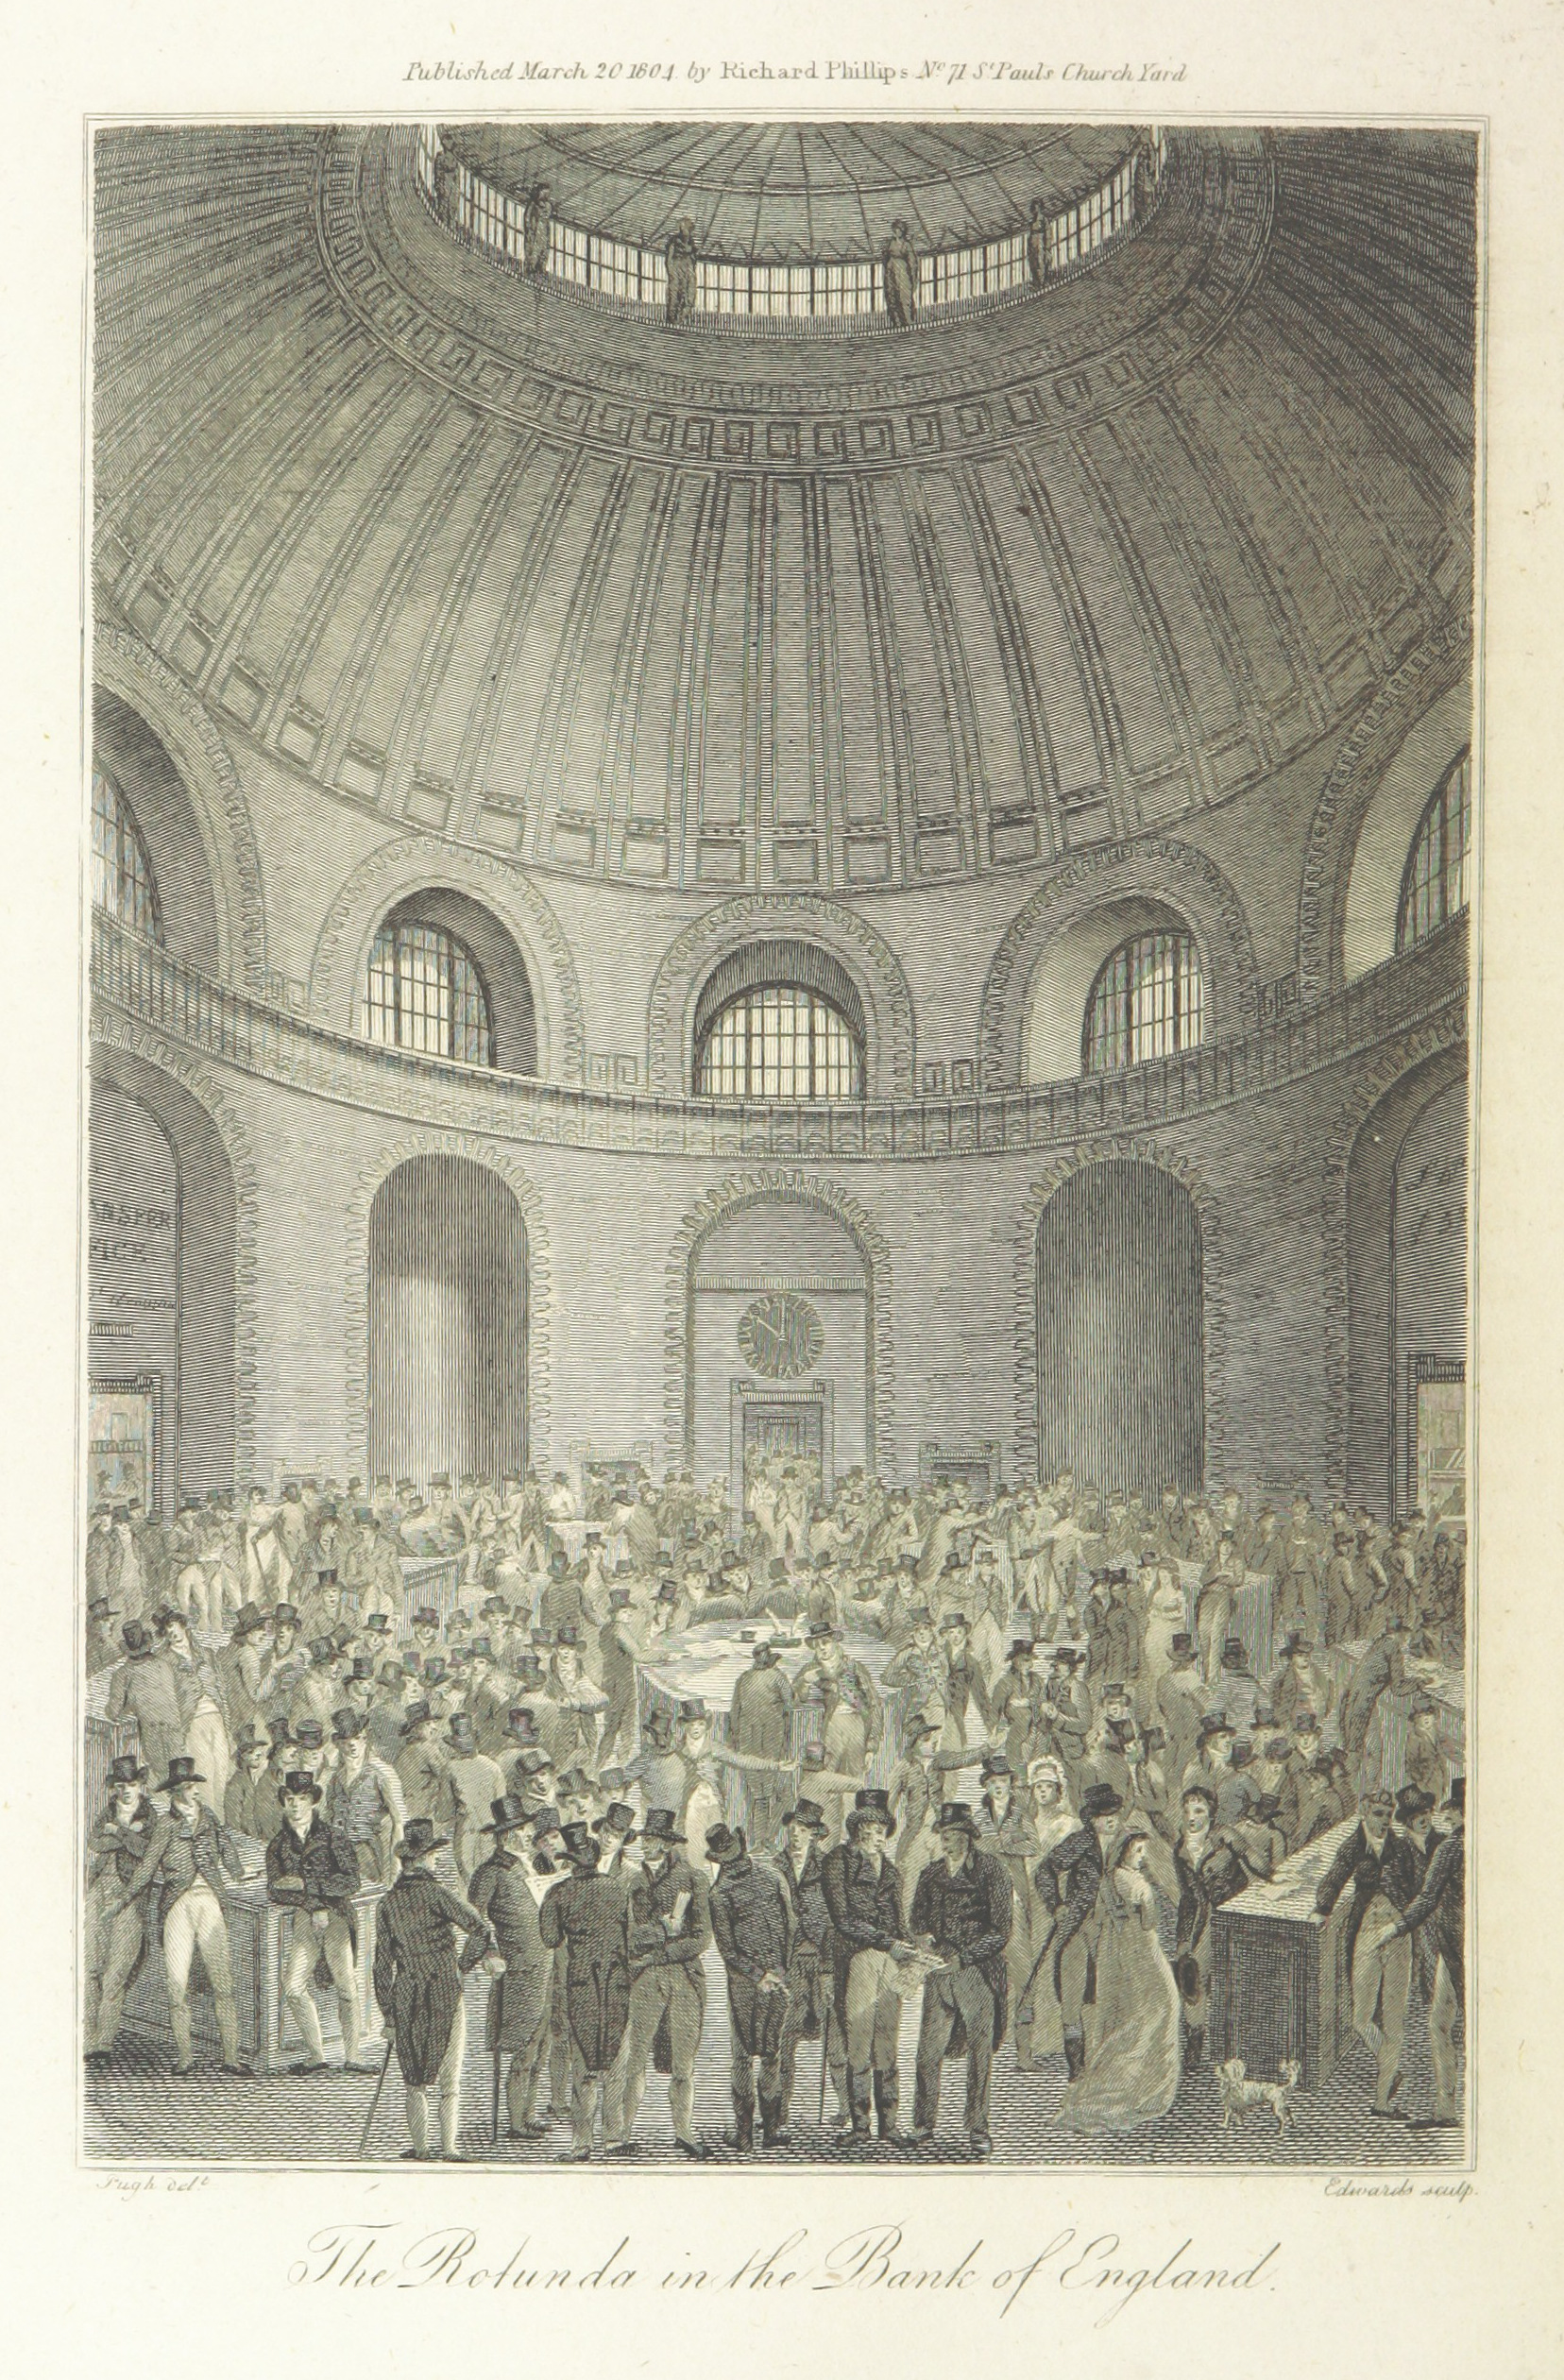 Phillips(1804)_p324_-_The_Rotunda_in_the_Bank_of_England